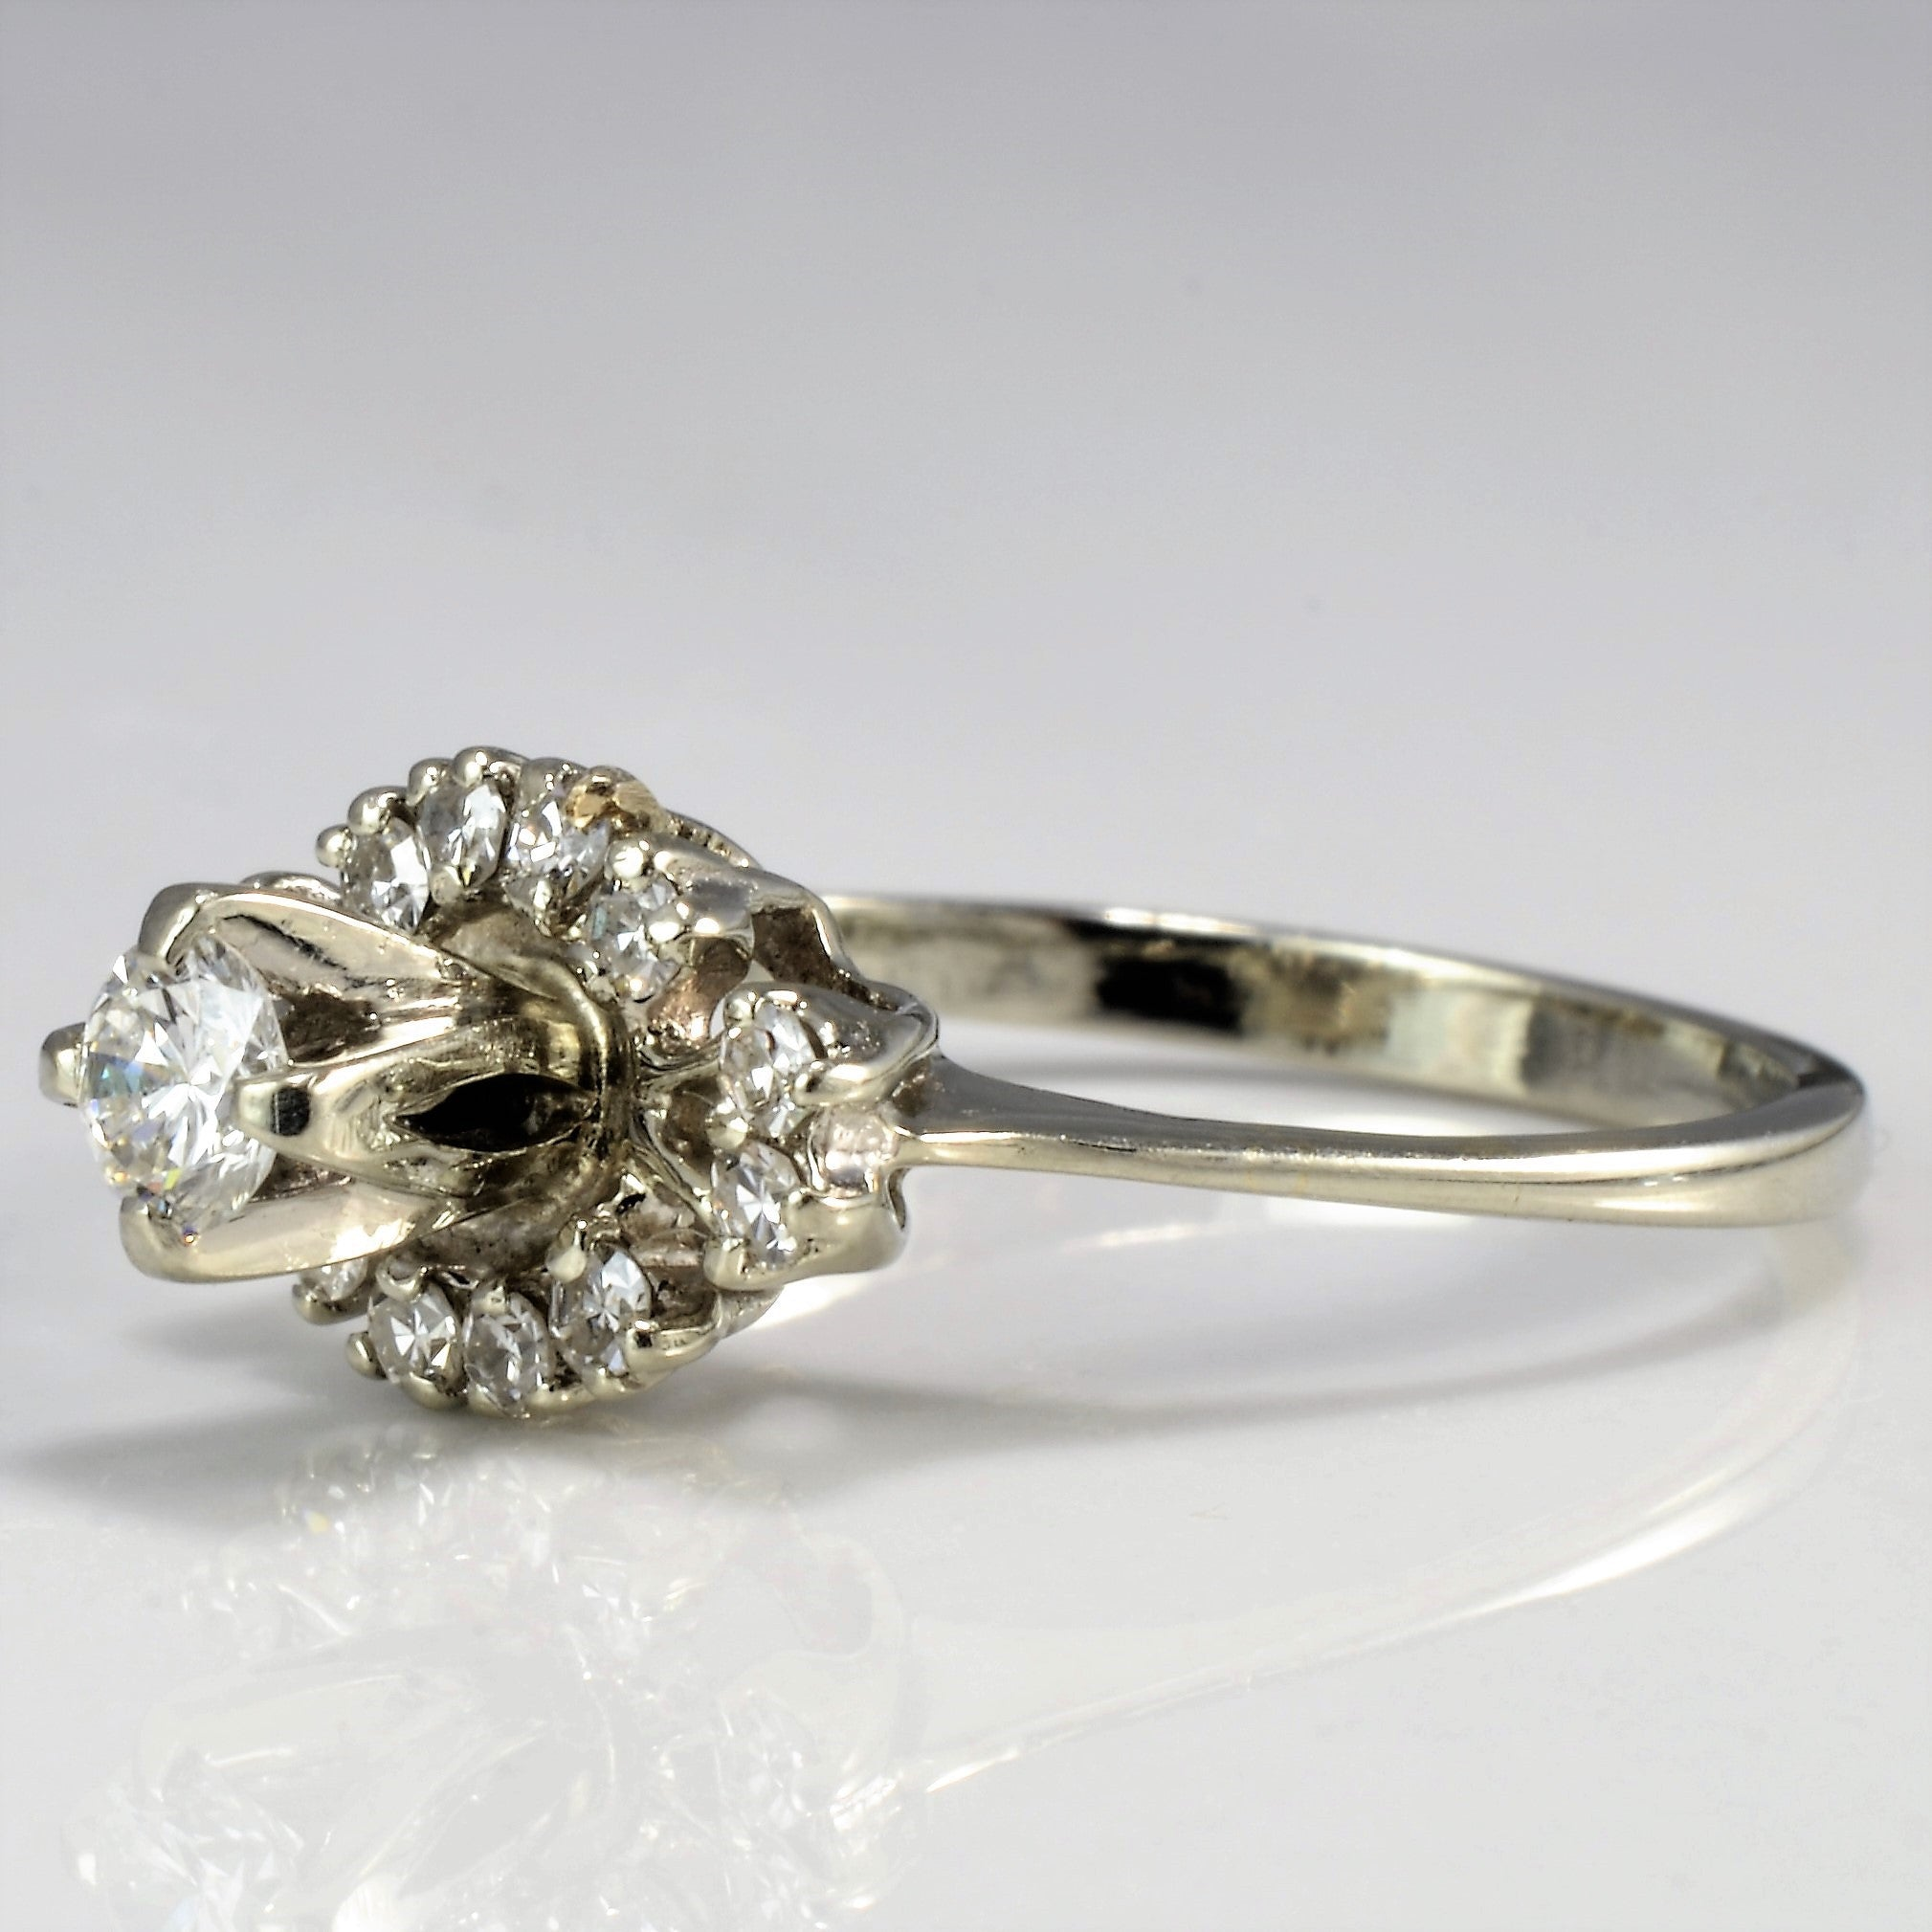 Retro Era Diamond Cluster Engagement Ring | 0.26ctw | SZ 4.5 |